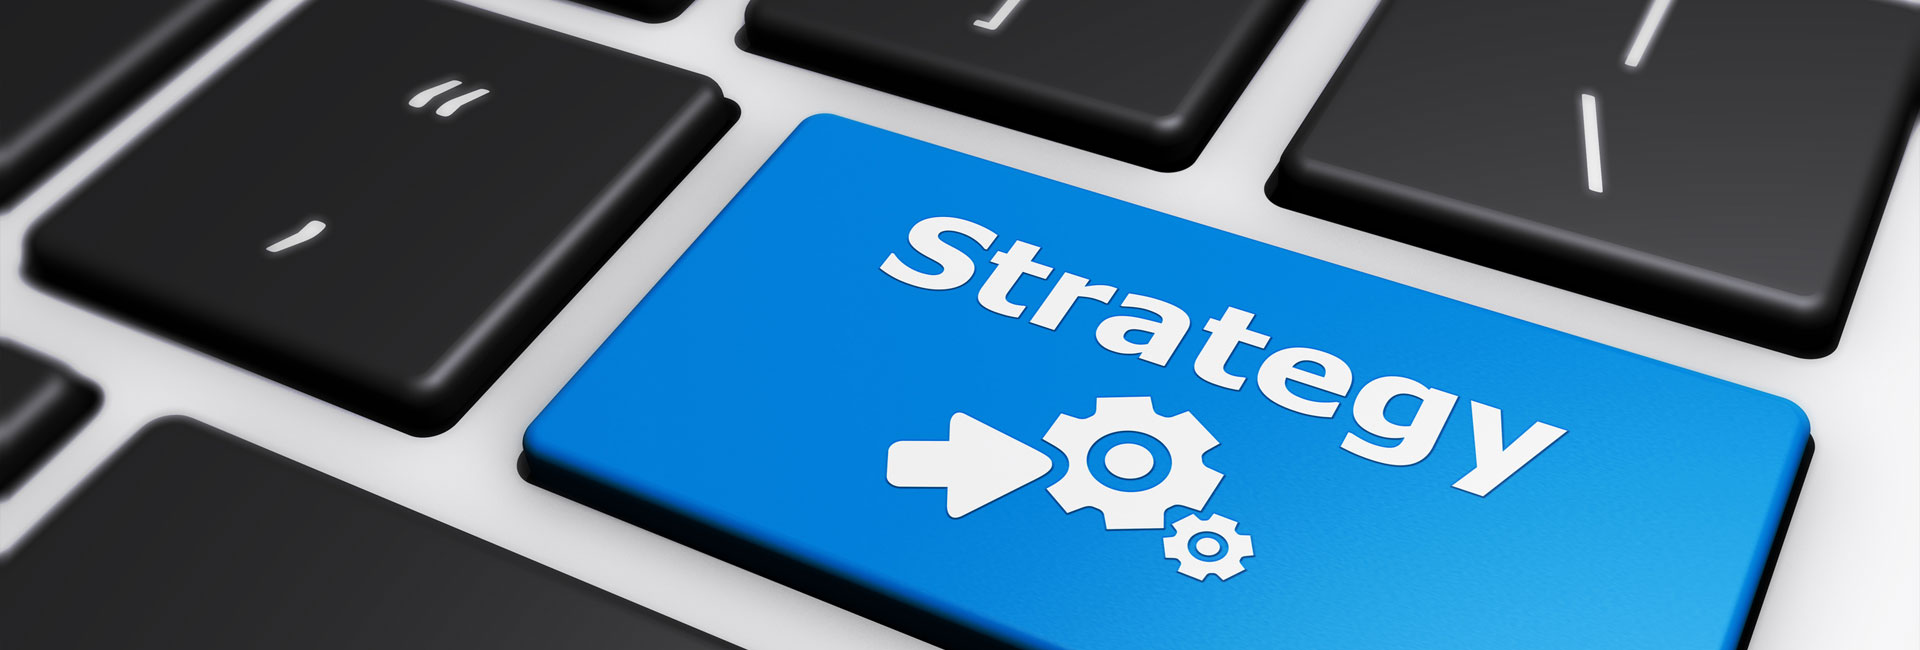 Website goals and strategy Sydney